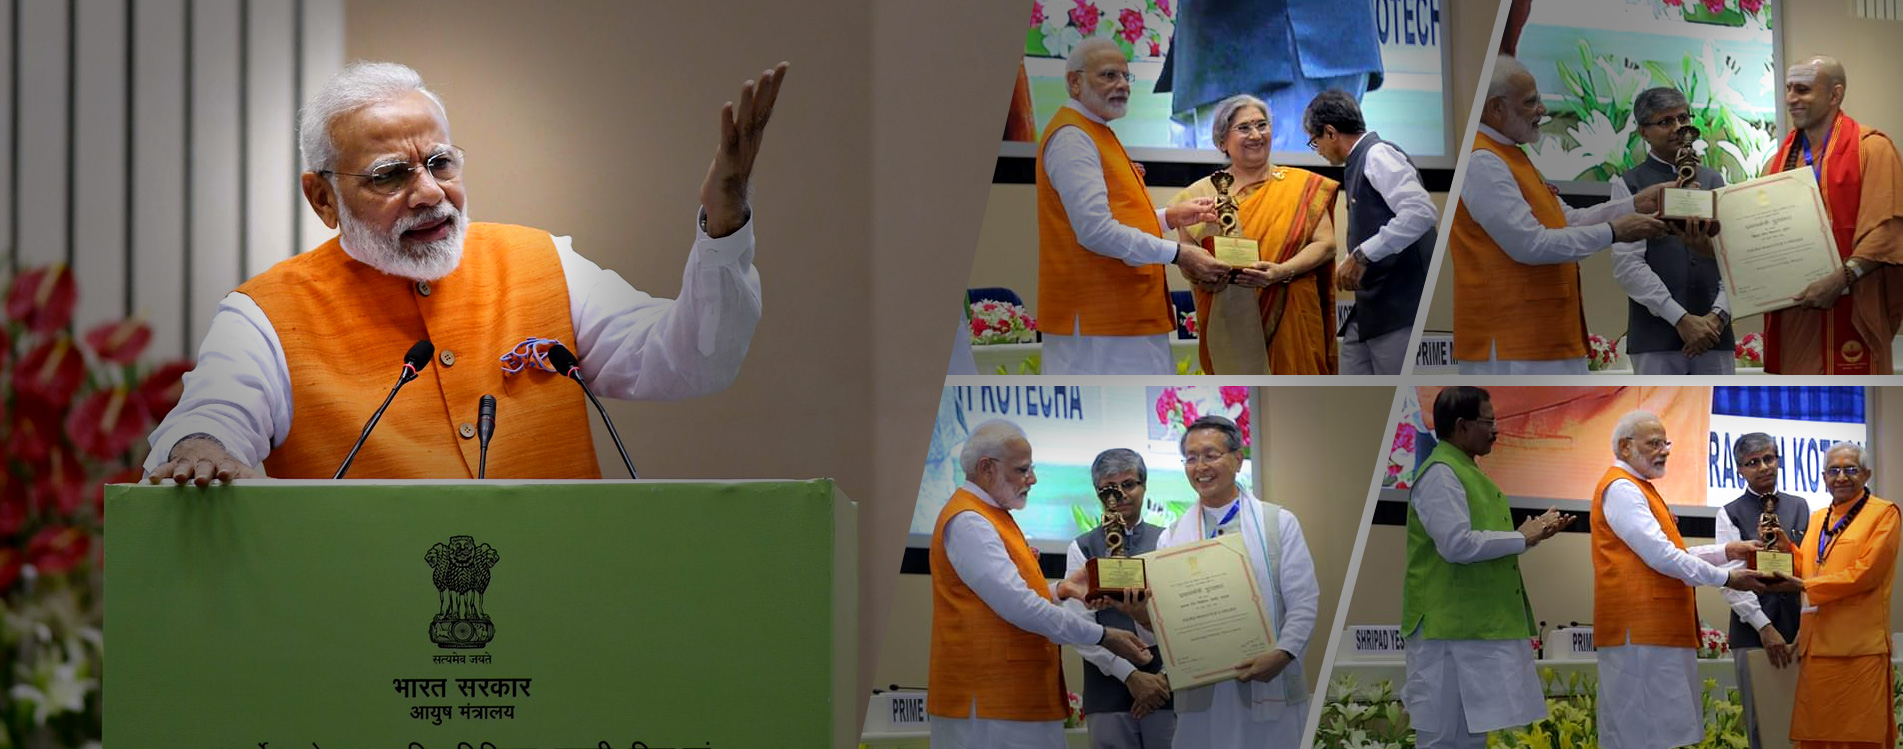 Prime-Minister-Yoga-Awardees